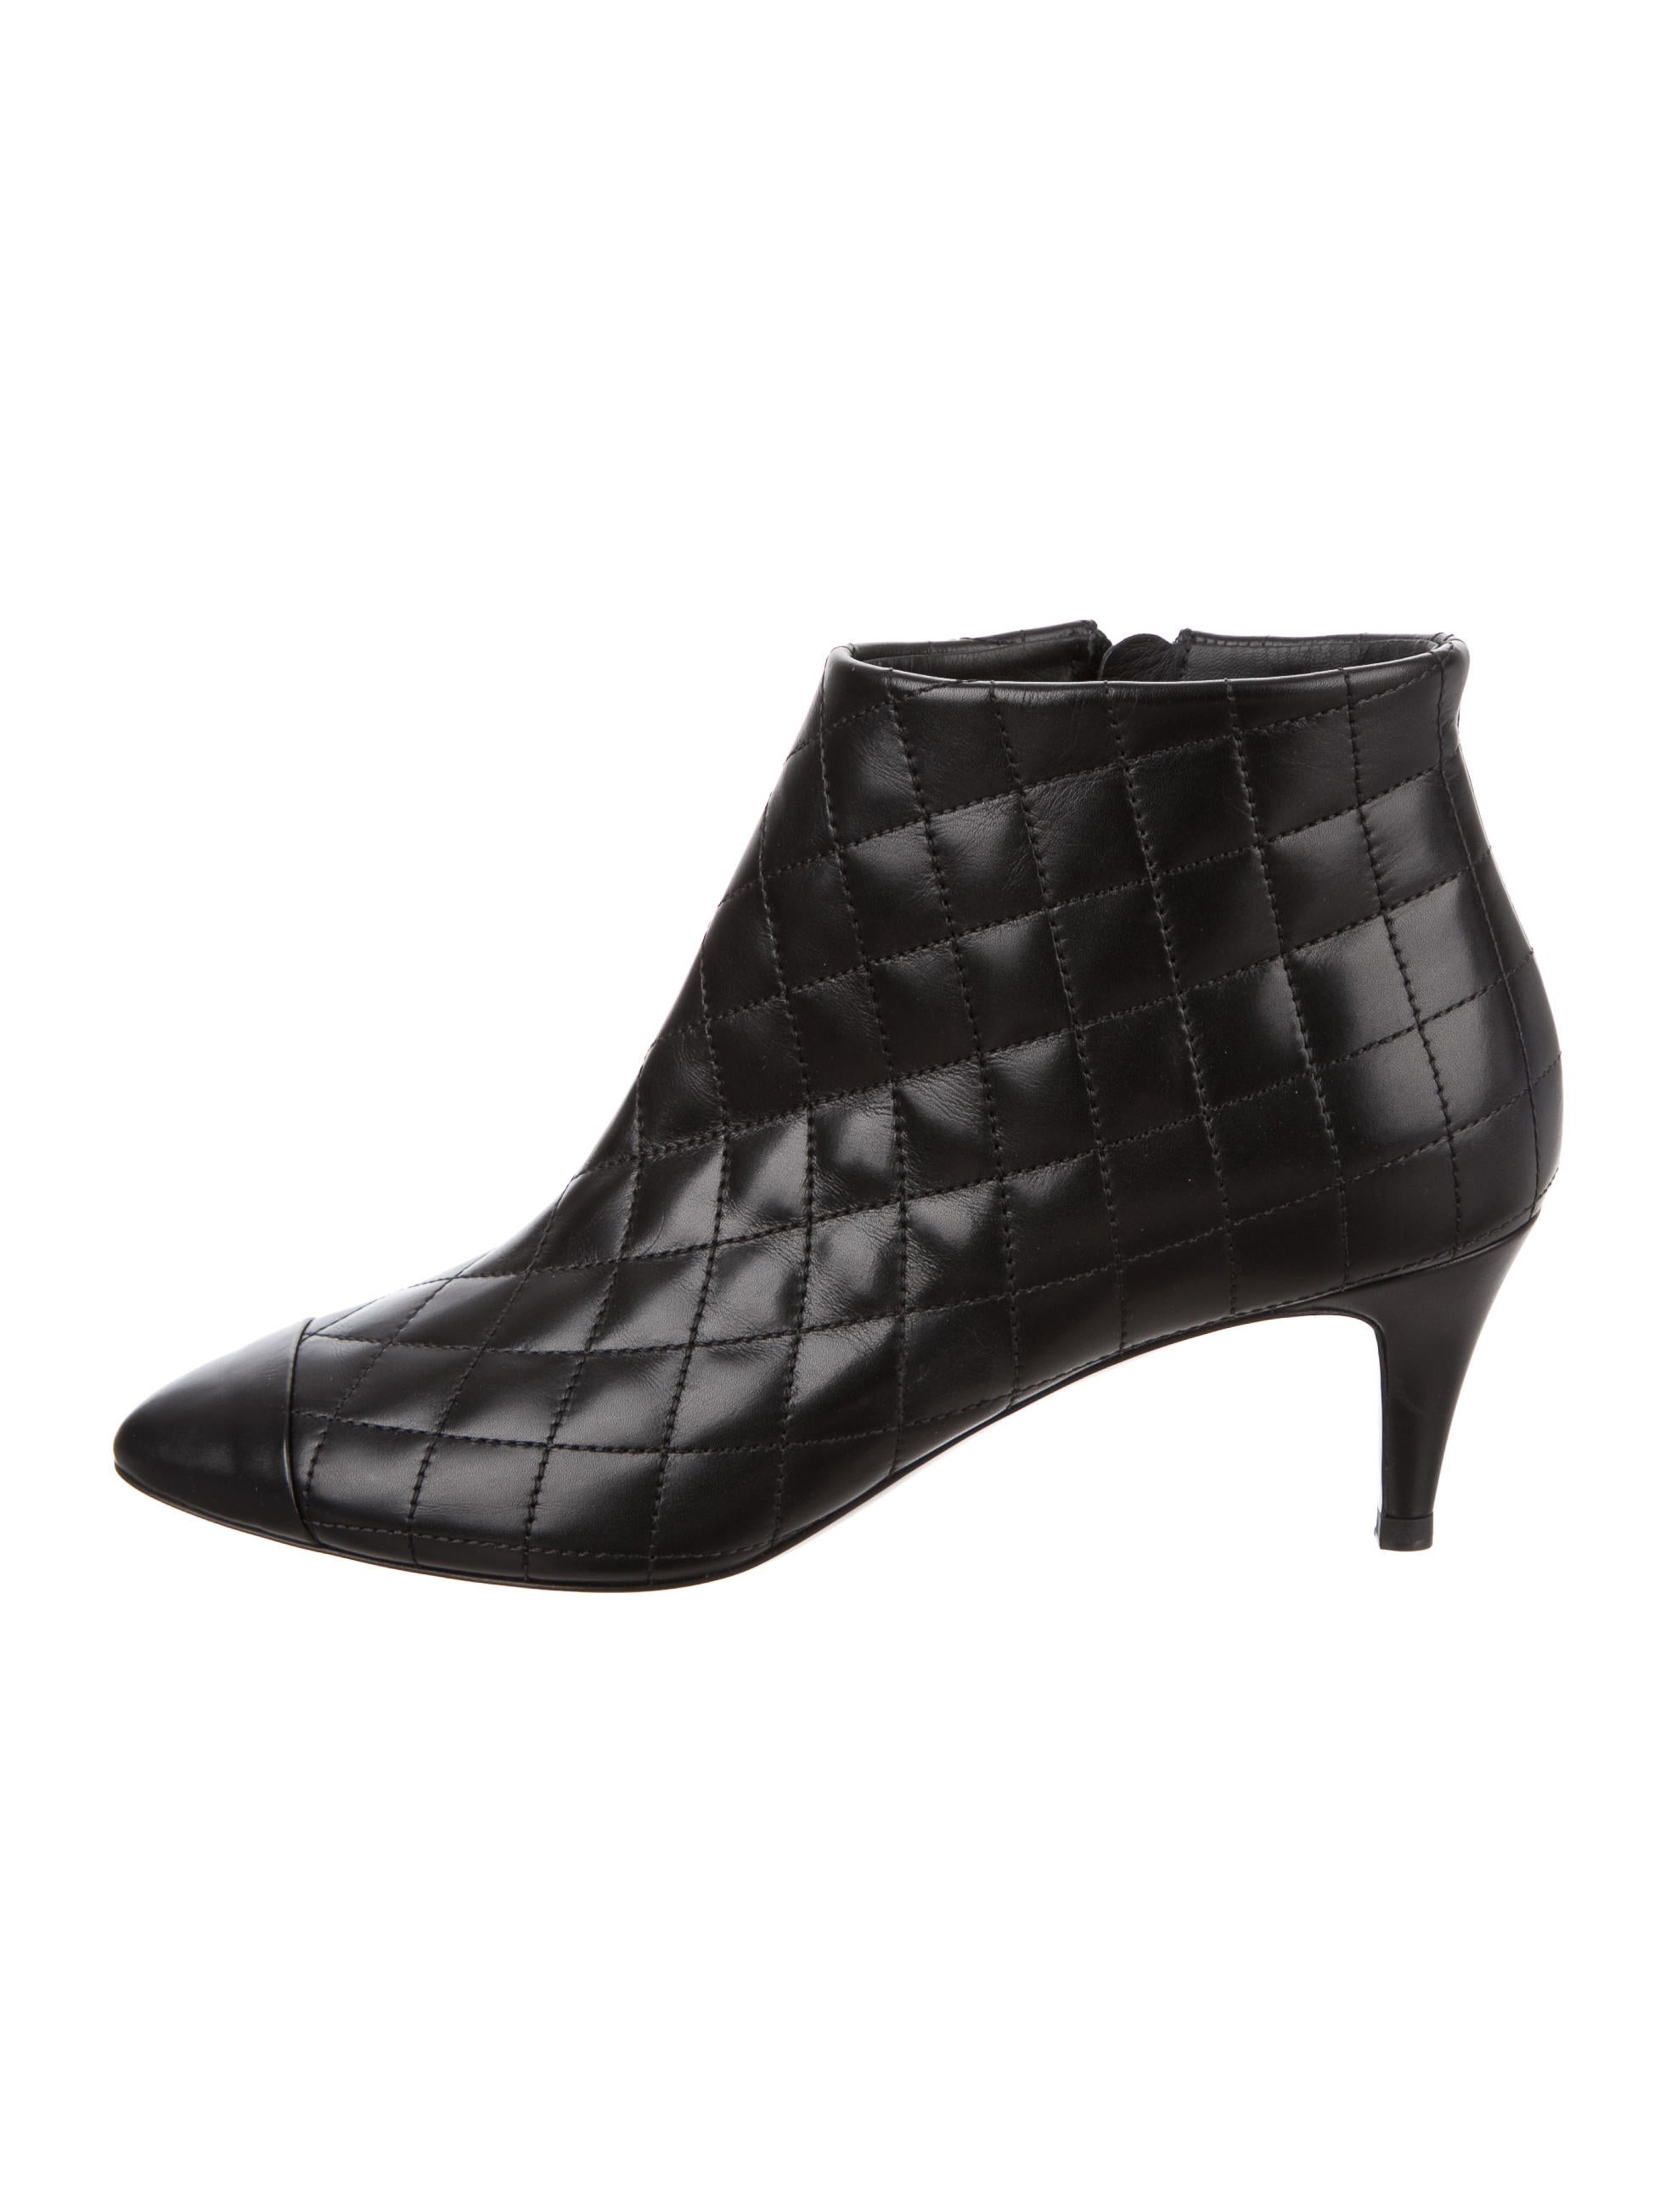 chanel quilted leather ankle boots shoes cha158027